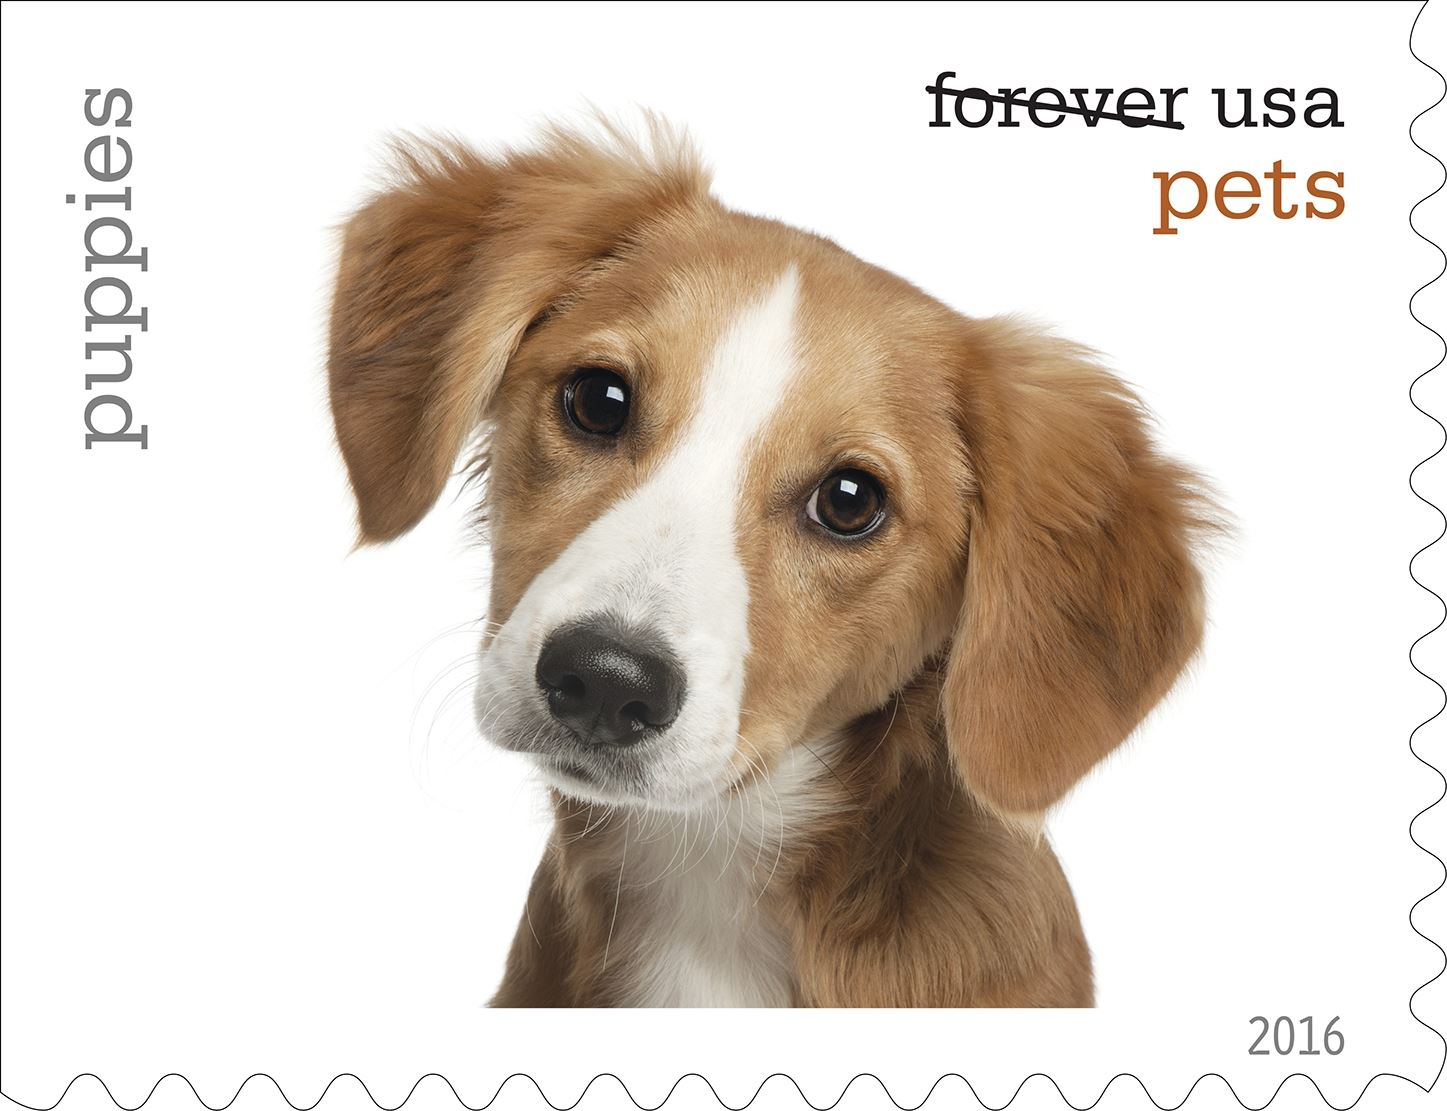 17-0_USPS16STA004r-7 Puppies will be among the pets celebrated in an upcoming set of Forever stamps issued by the U.S. Postal Service.